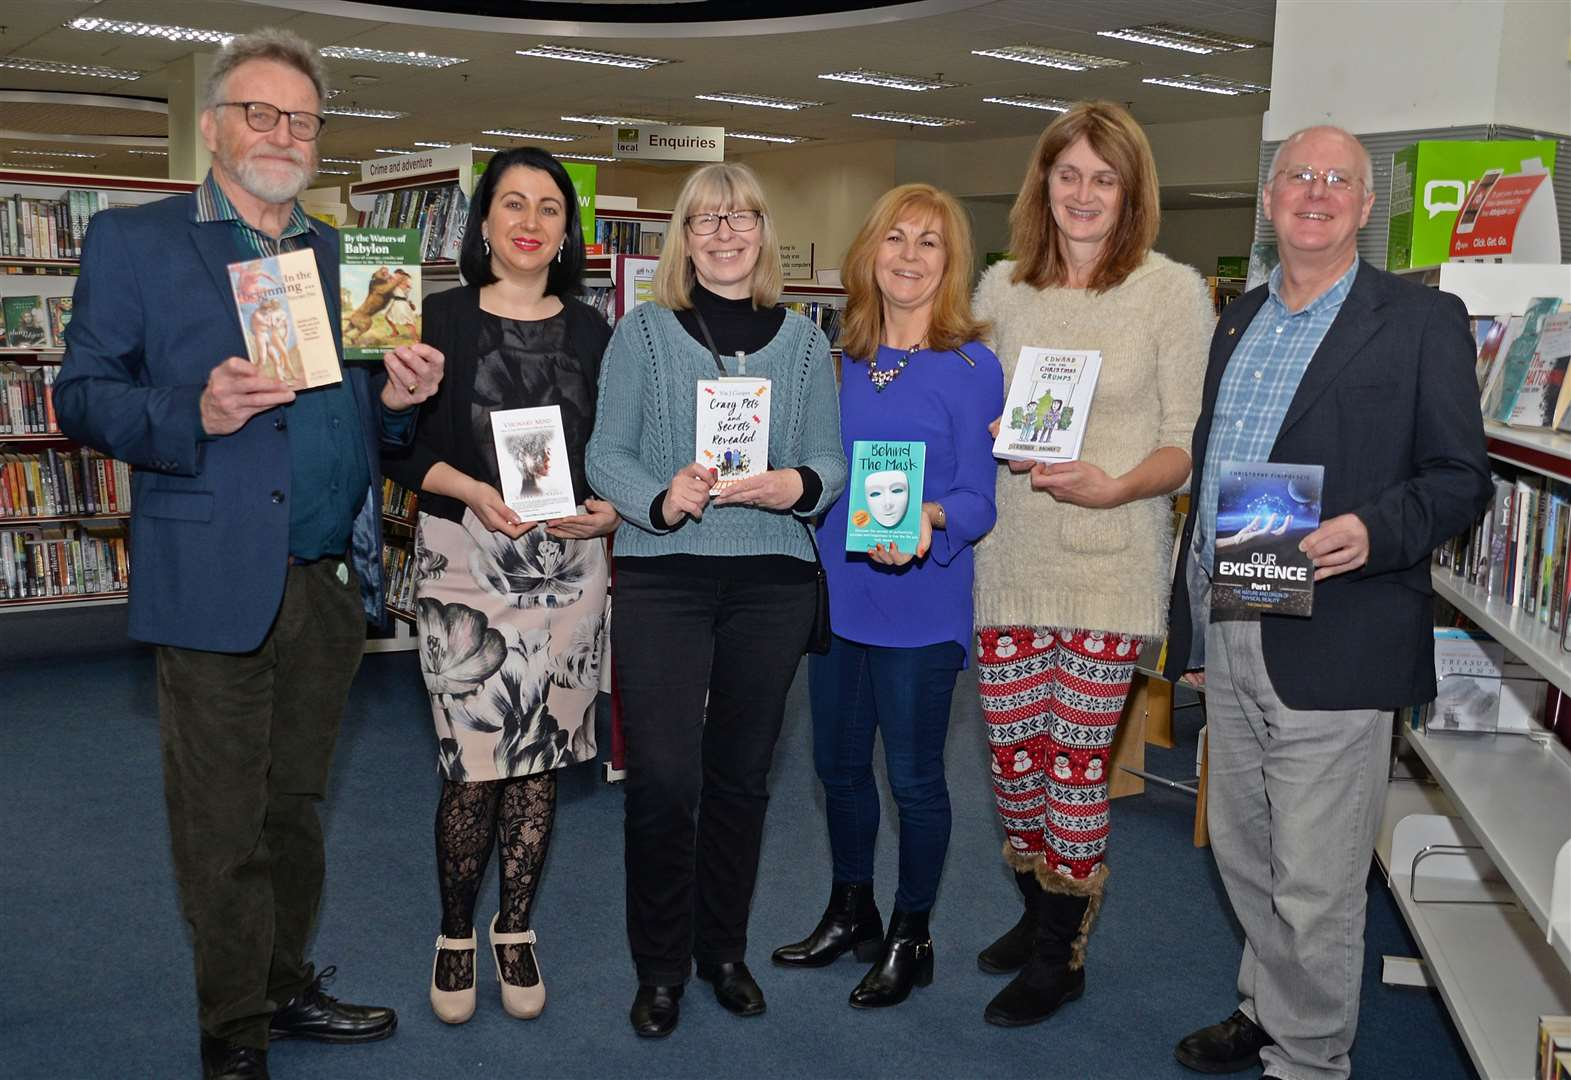 Read all about it! Authors showcase writing at library